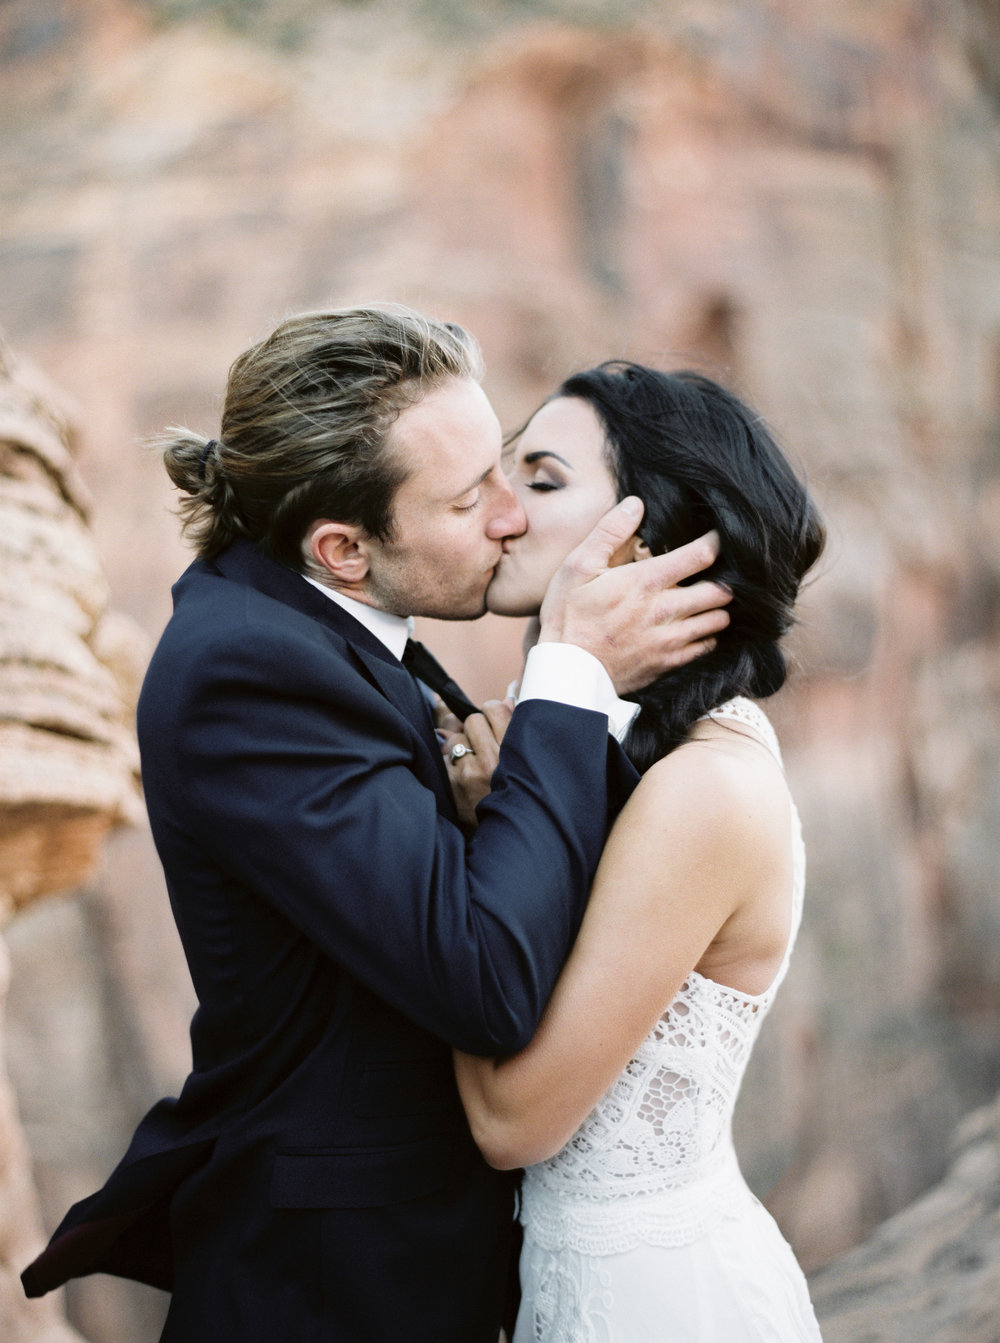 tyler_rye_contax645_fuji400h_zion_national_park_utah_tyler_rye_workshops_forevermore_events_by_bloomers_silk_and_willow_alta_moda_bridal_perfectly_suited_katie_livingston_kl_artistry_red_tie_cinema_bella_belle_shoes_heather_mcallister_roberts_ethen_roberts_zion_nps_fujifilm_sp3000_photovisionprints.jpg